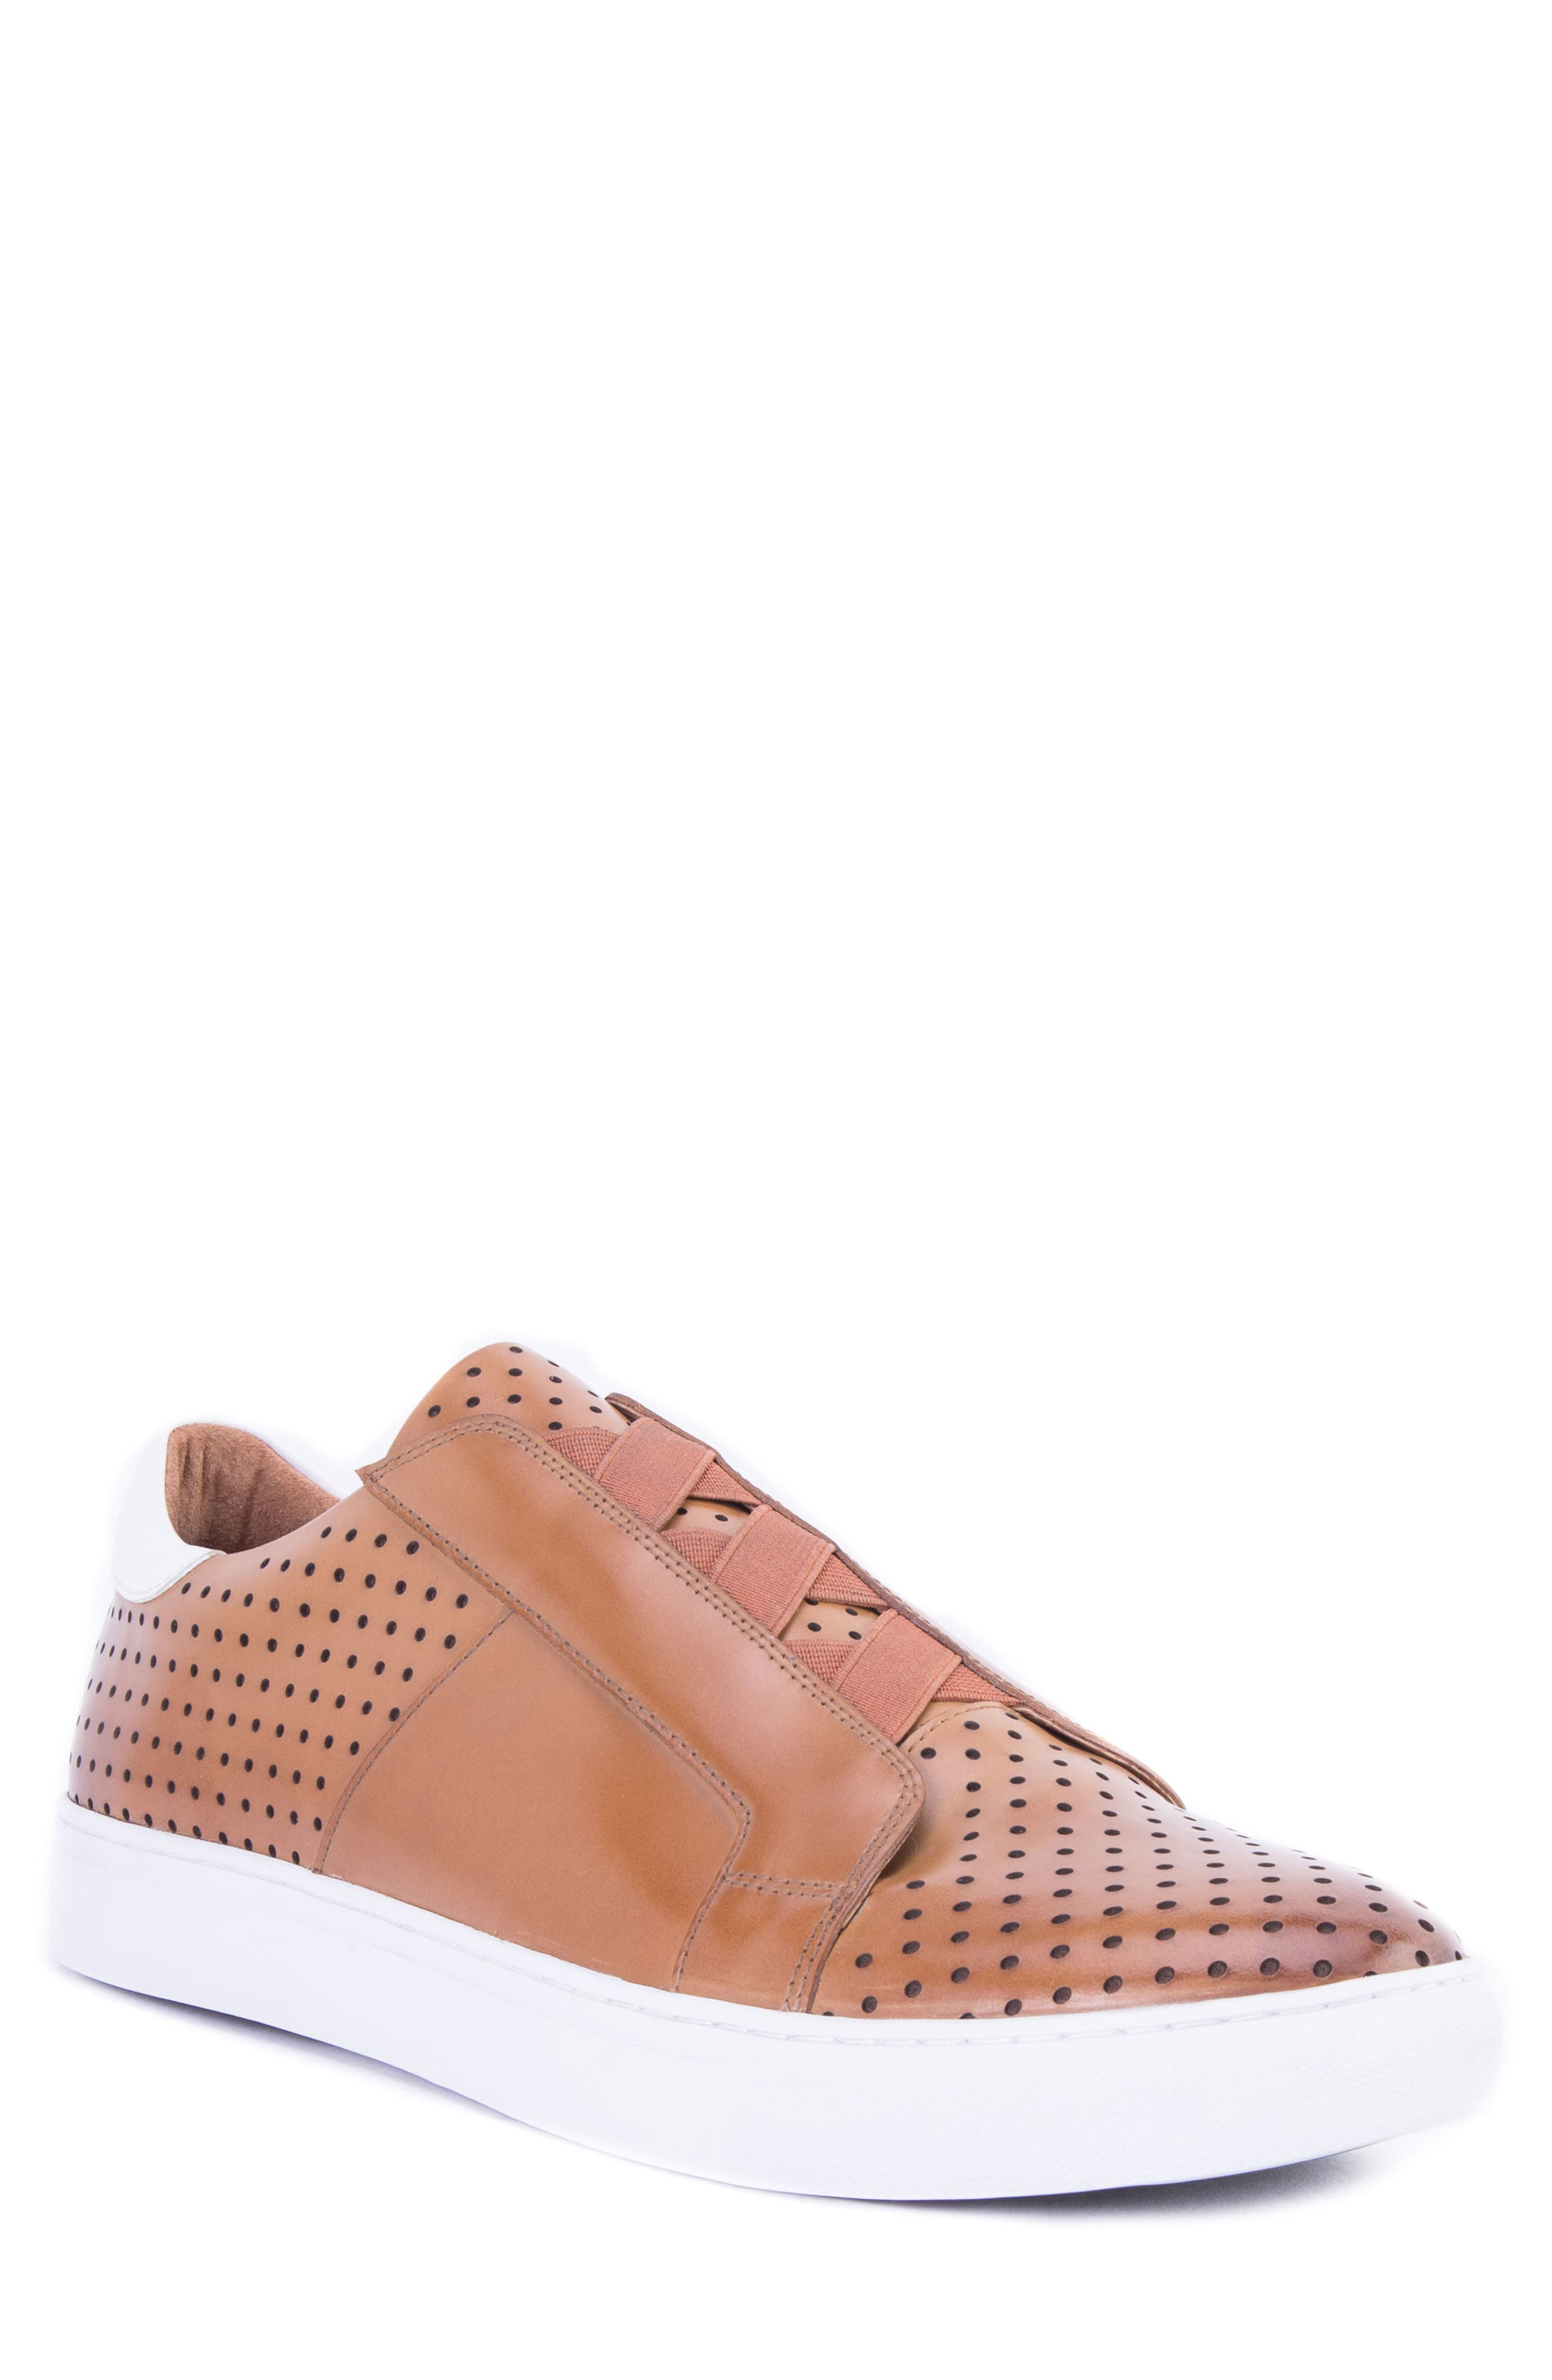 Rowley Perforated Laceless Sneaker,                         Main,                         color, COGNAC LEATHER